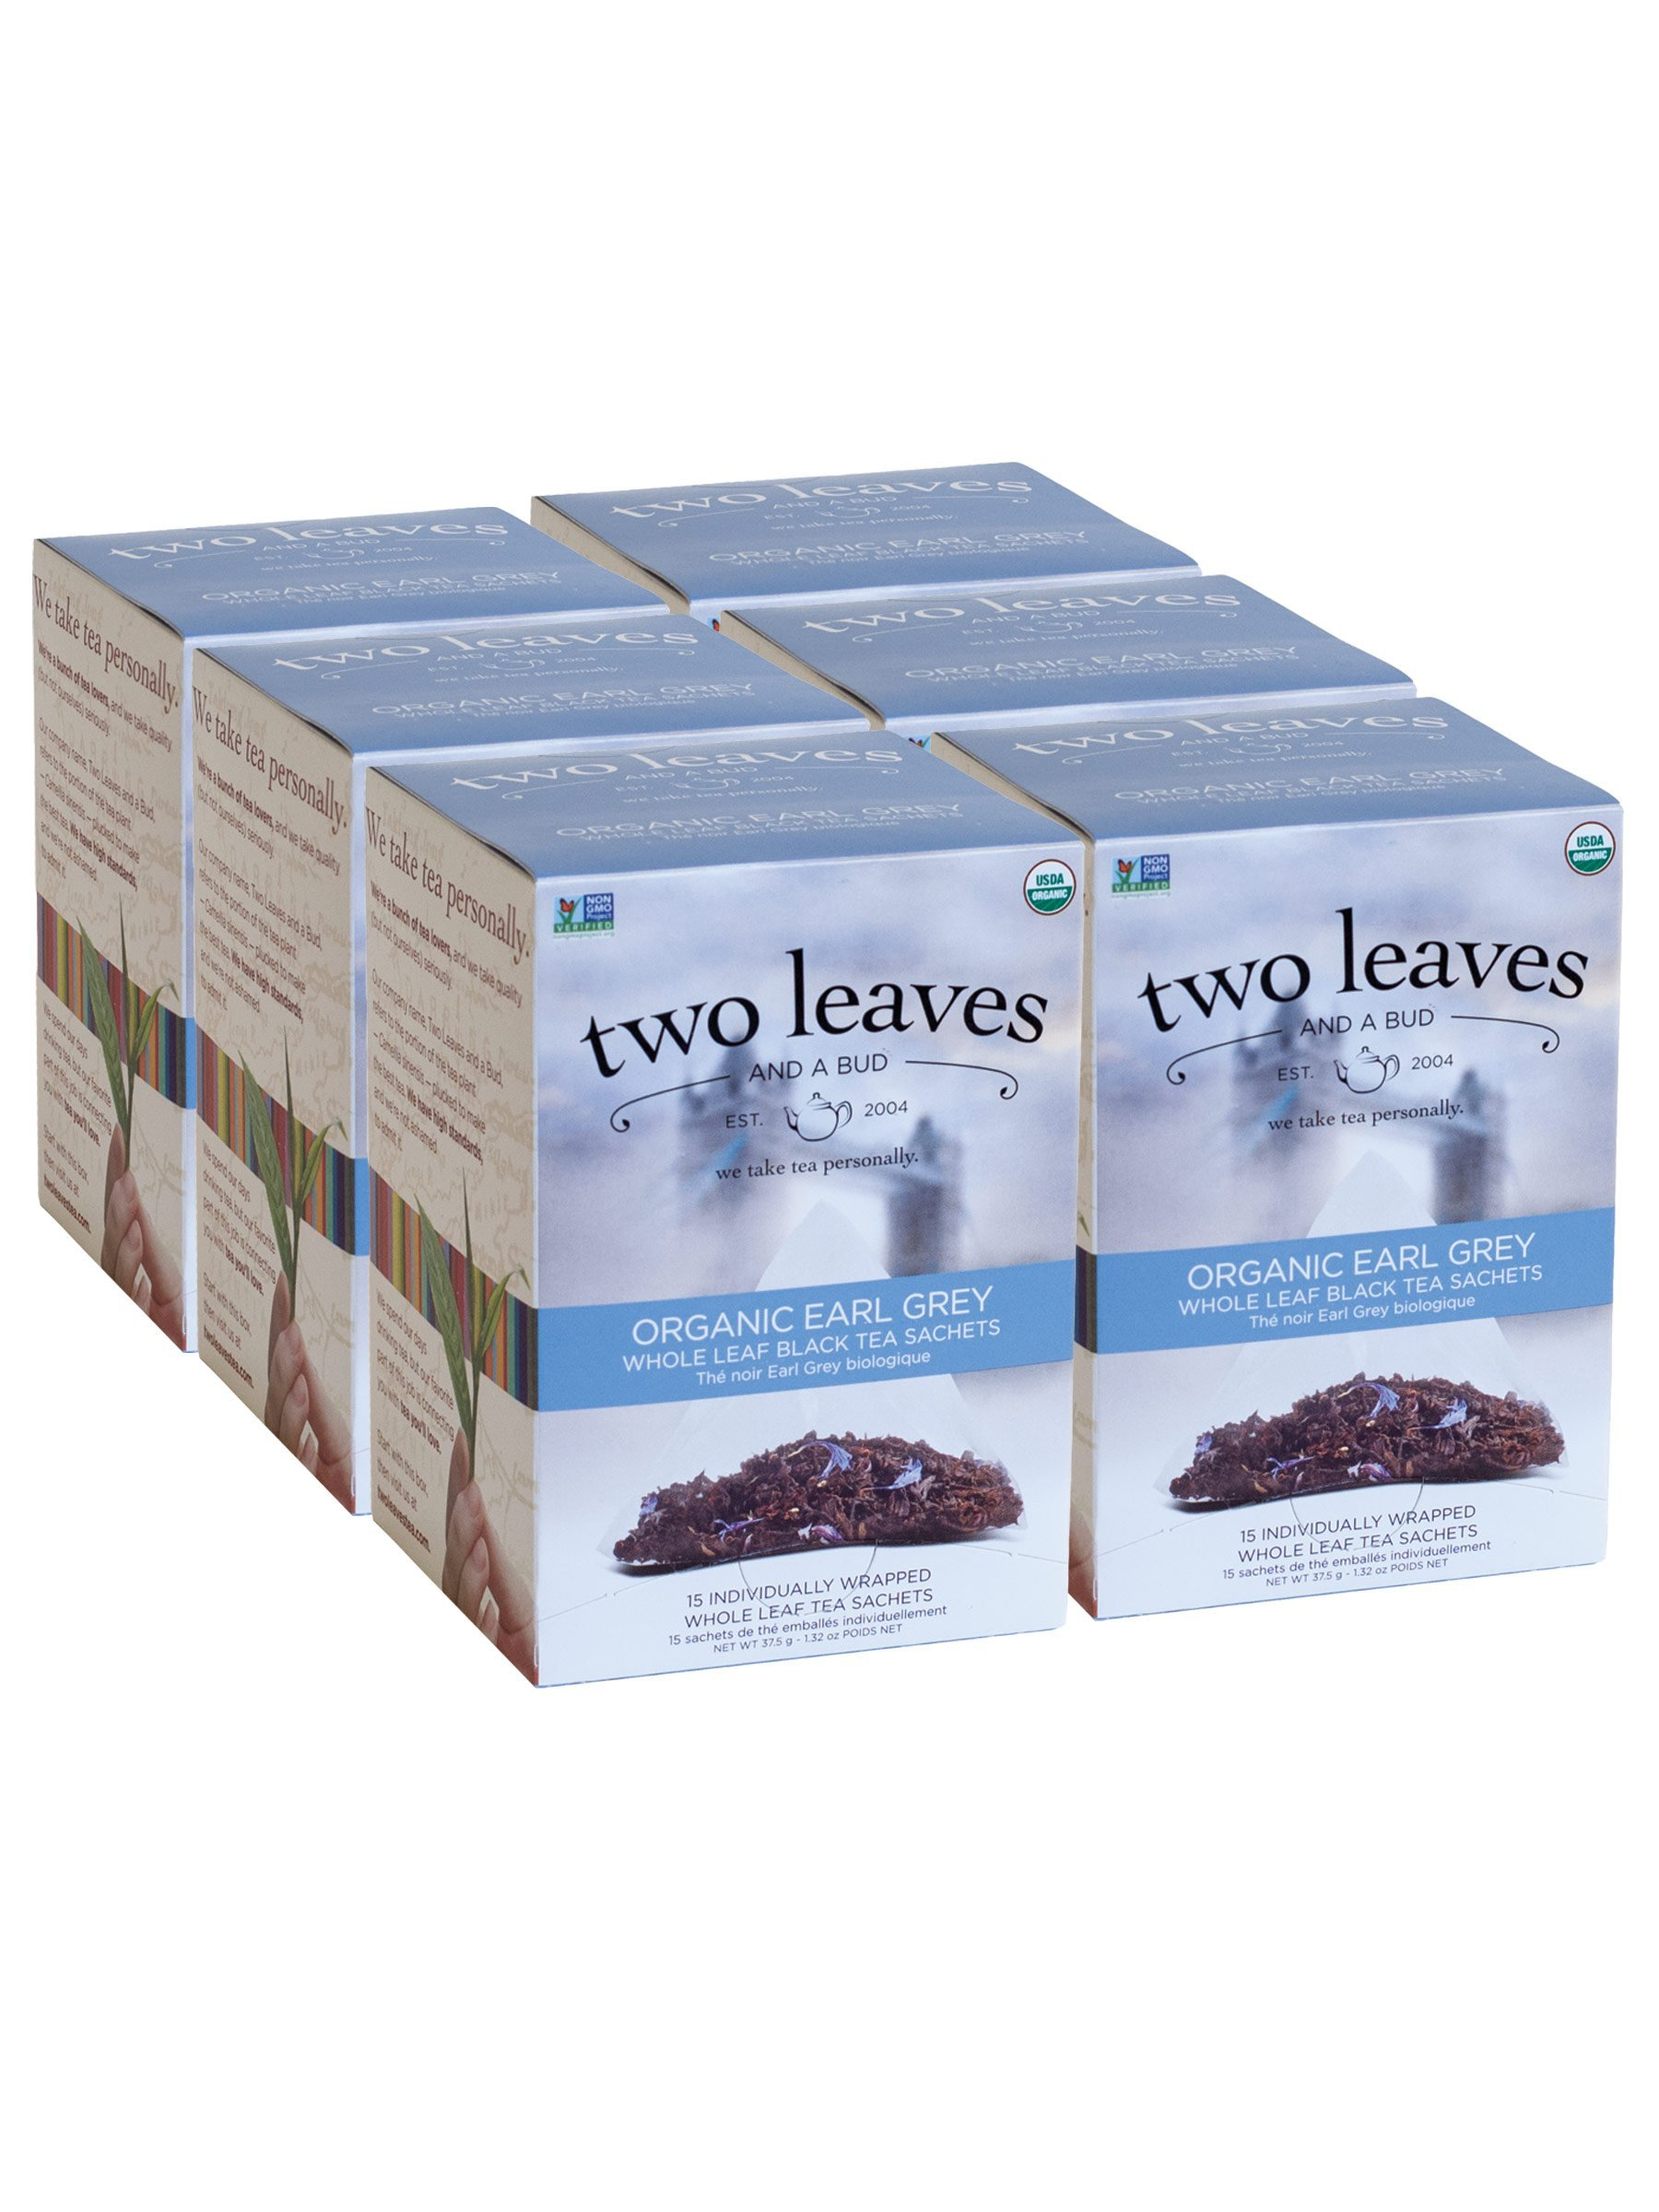 Two Leaves and a Bud Organic Earl Grey Black Tea Bags, 15 Count (Pack of 6) Organic Whole Leaf Full Caffeine Black Tea in Pyramid Sachet Bags, Delicious Hot or Iced with Milk, Sugar or Honey or Plain by Two Leaves and a Bud